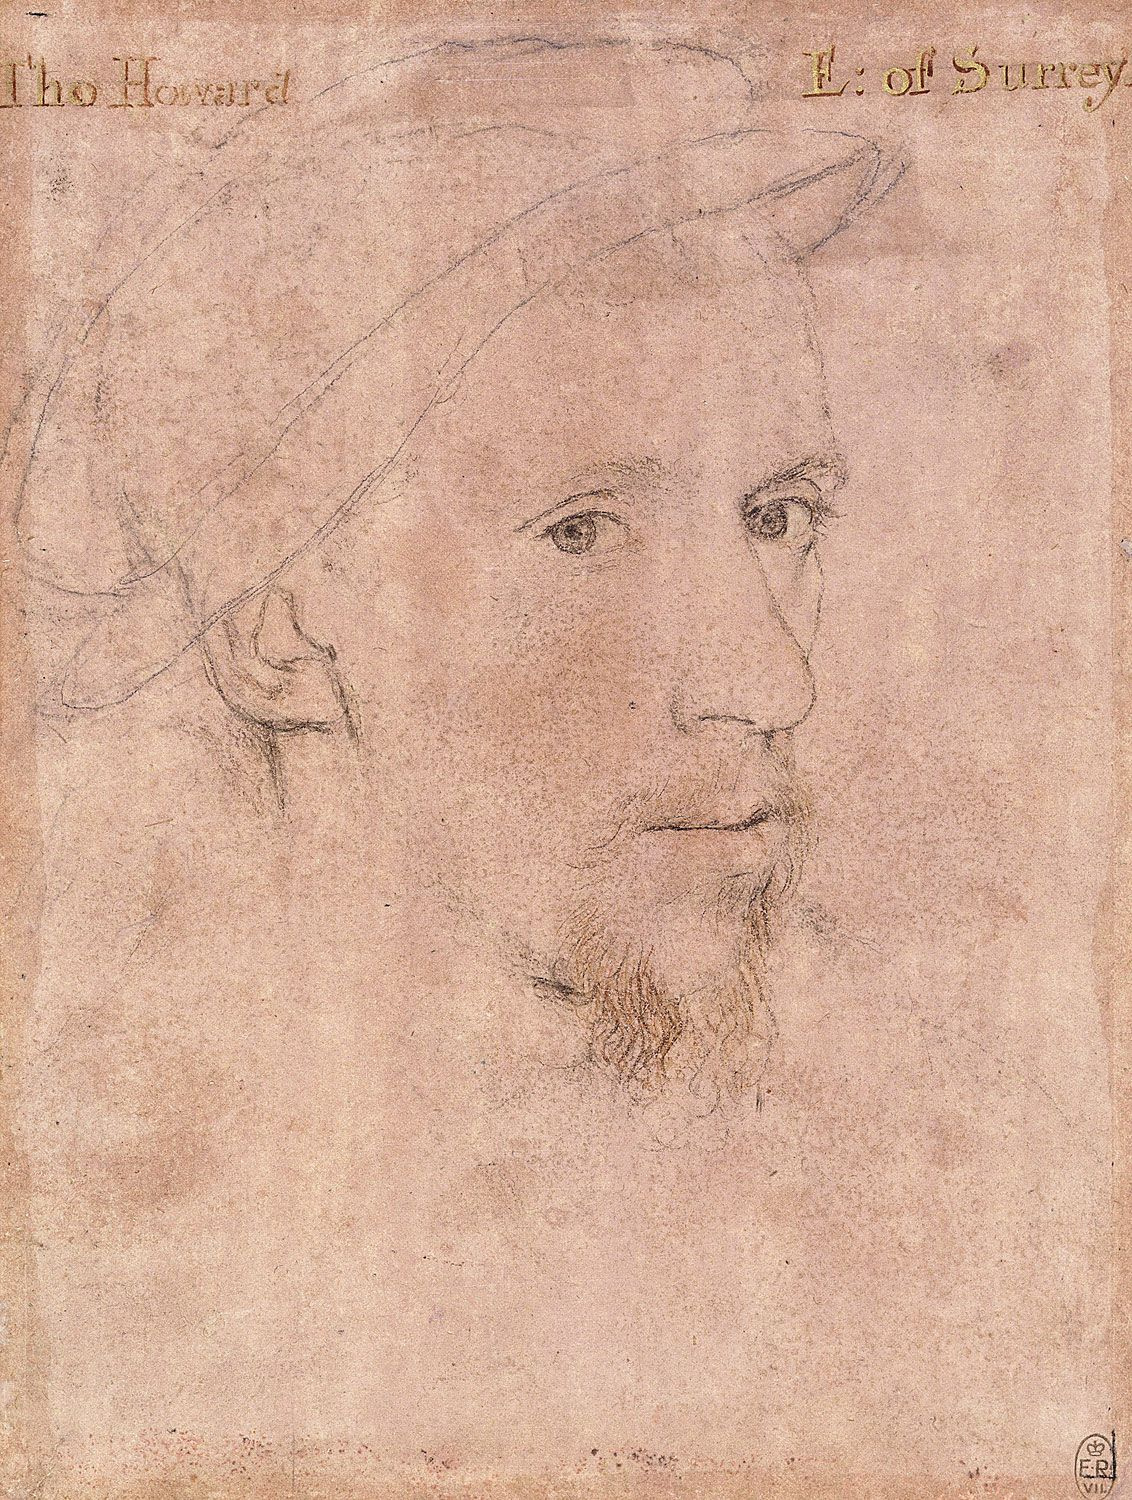 Portrait of Henry Howard, Earl of Surrey. c.1550